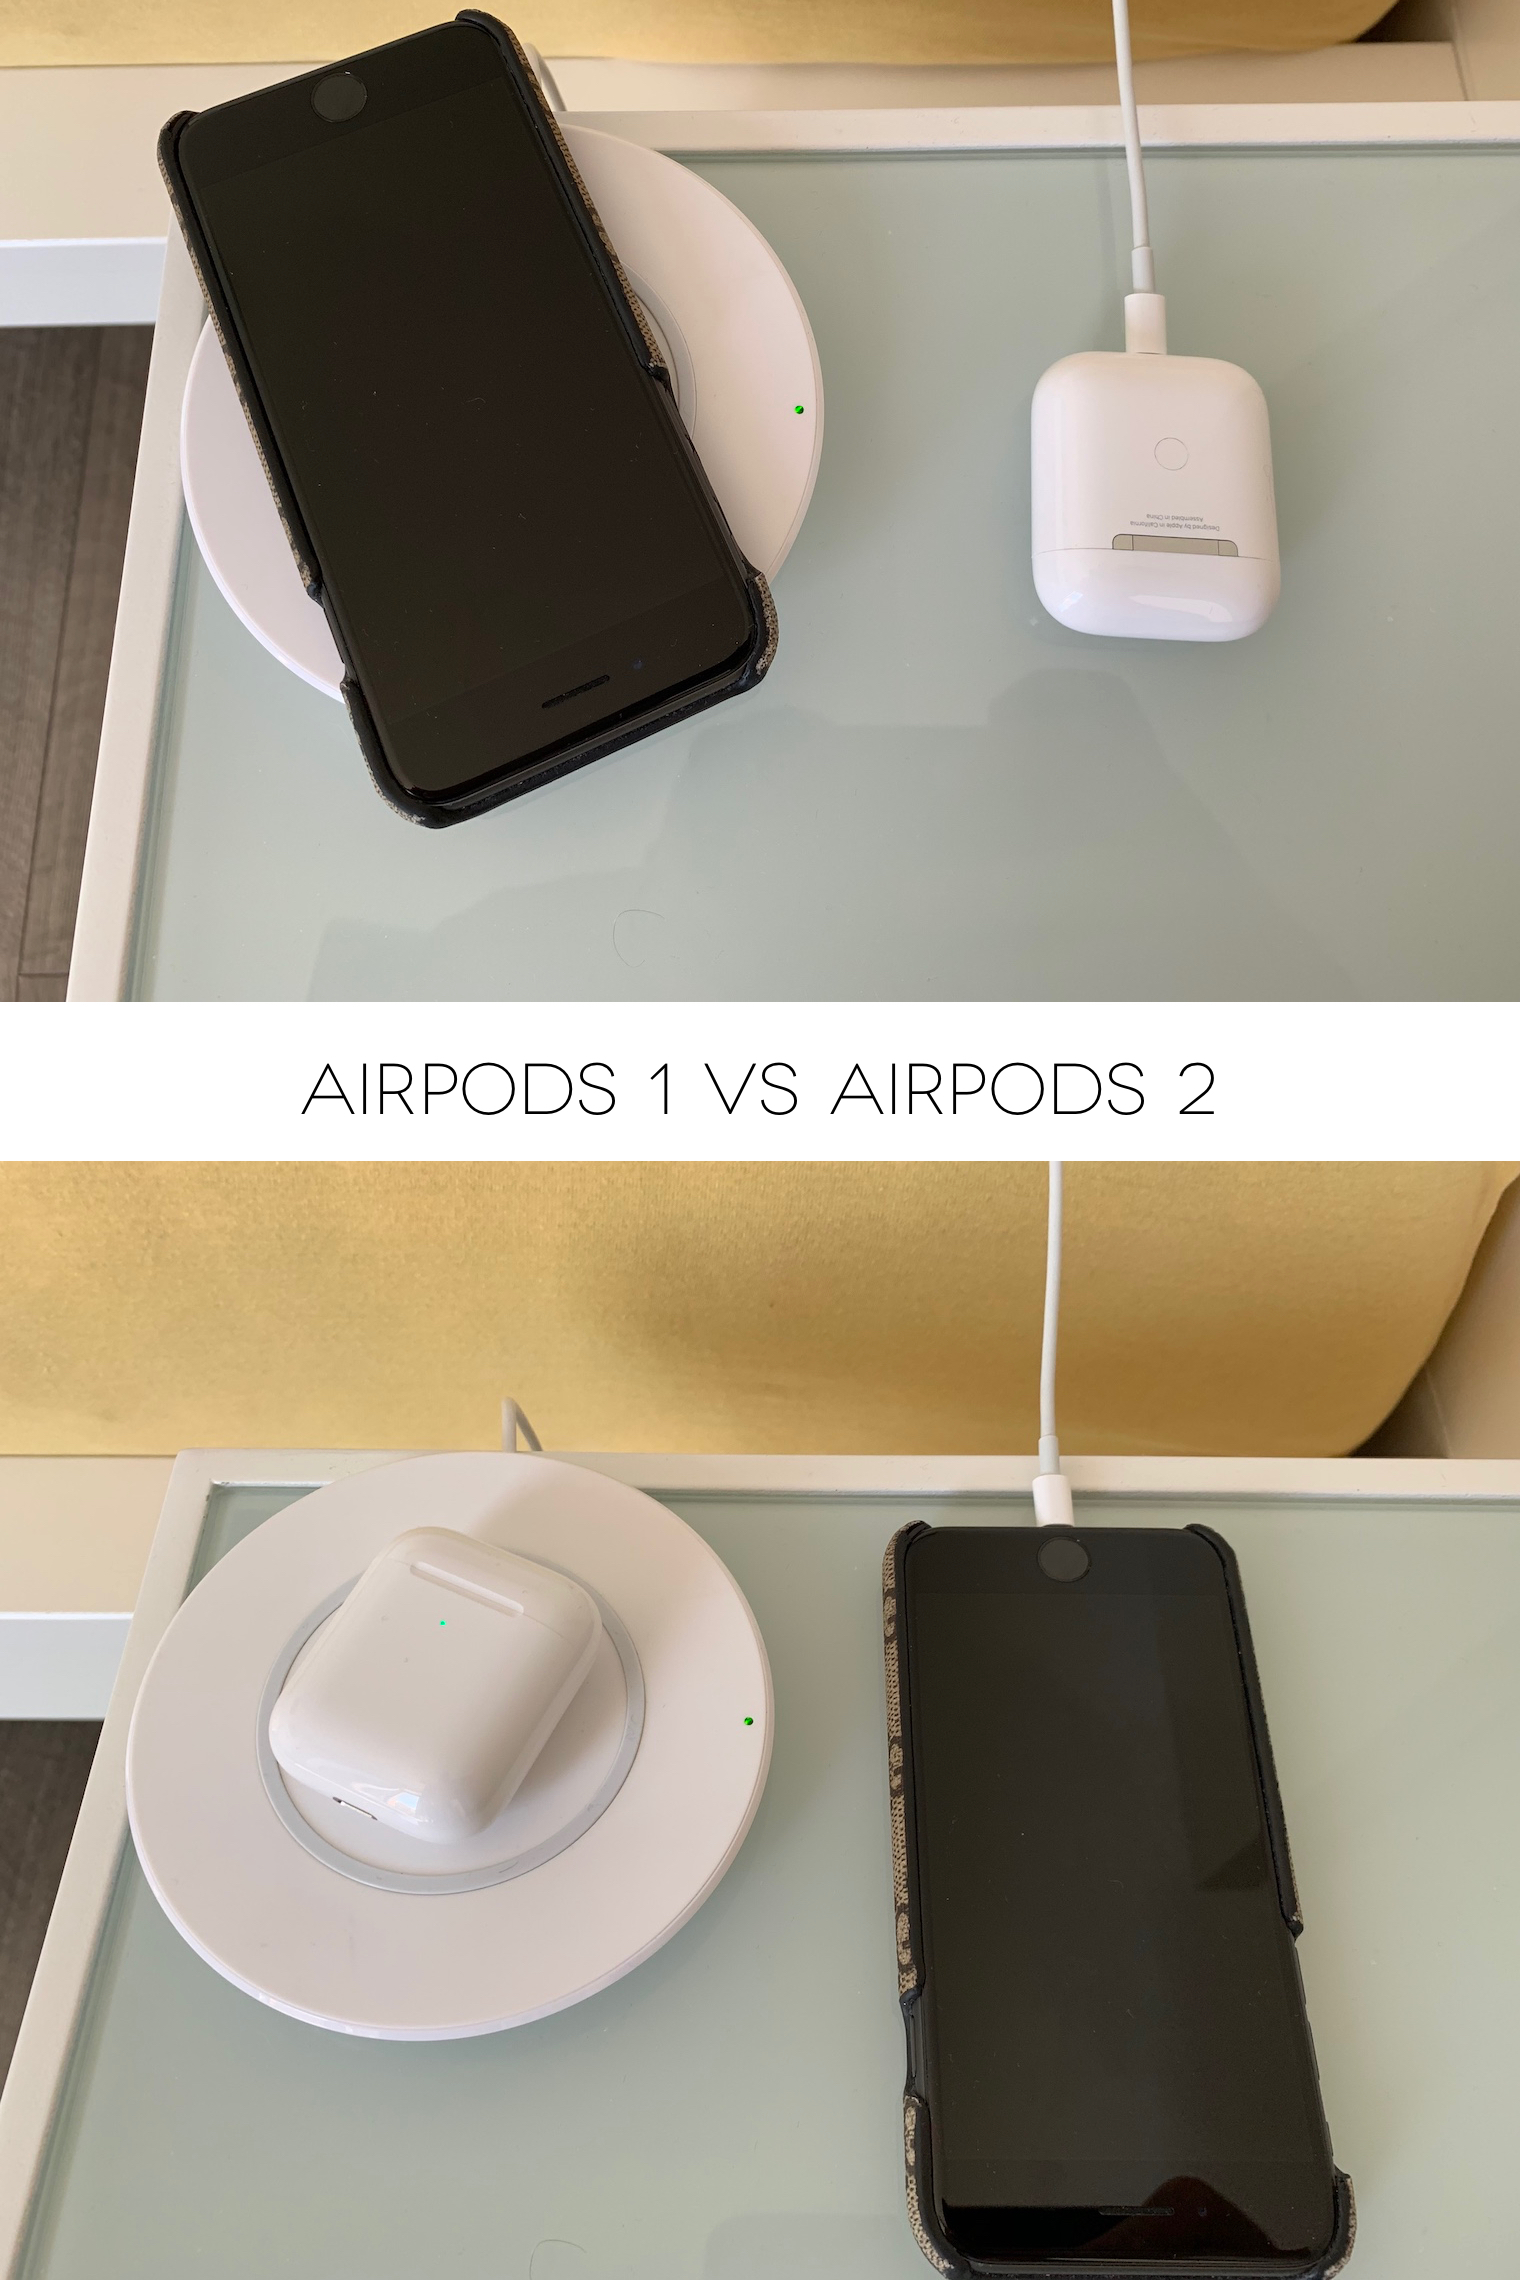 AirPods 1 vs. AirPods 2